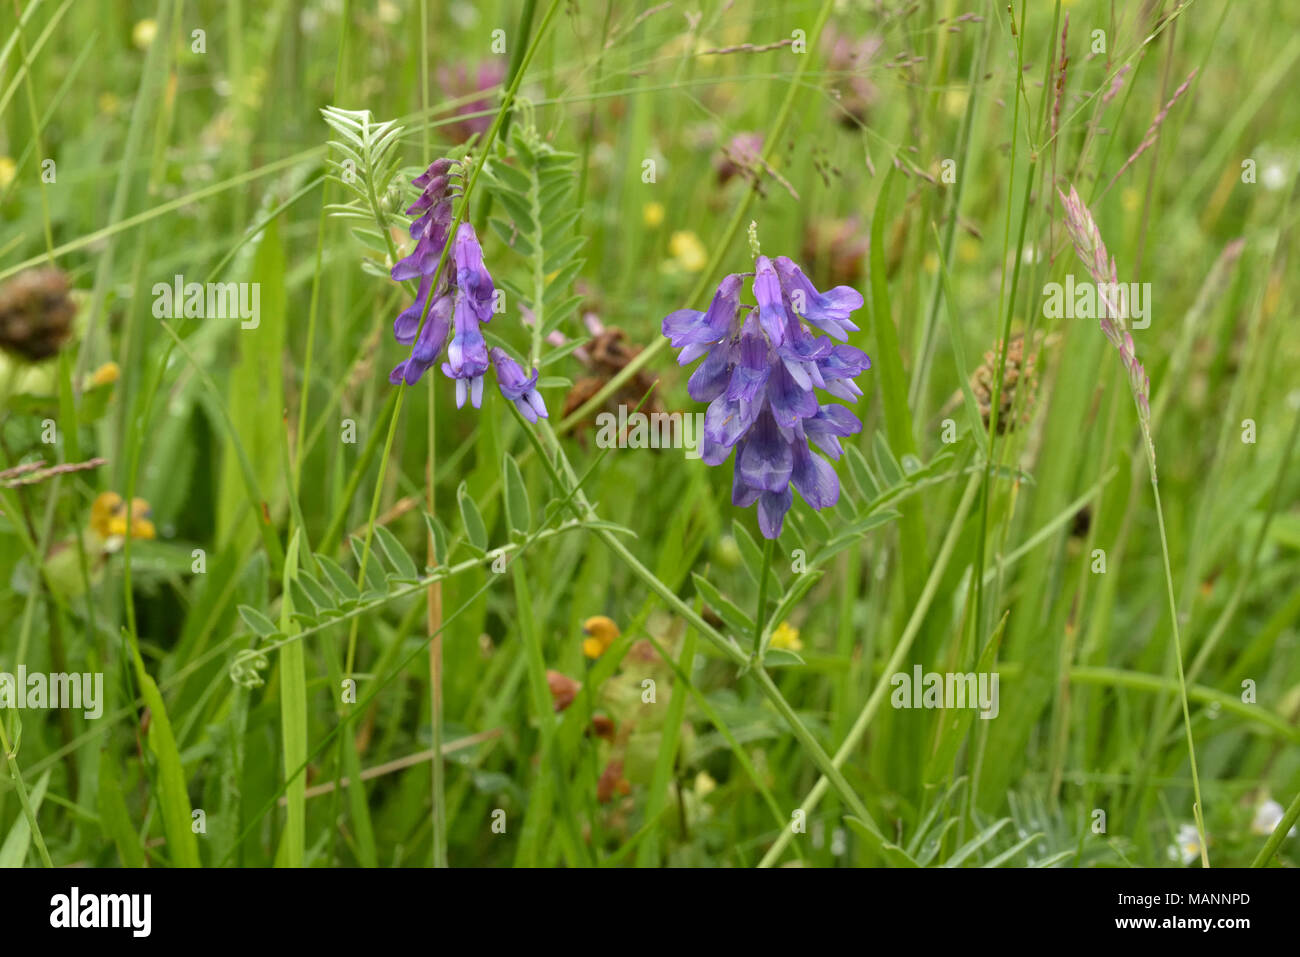 Tufted Vetch, Vicia cracca growing in a meadow - Stock Image